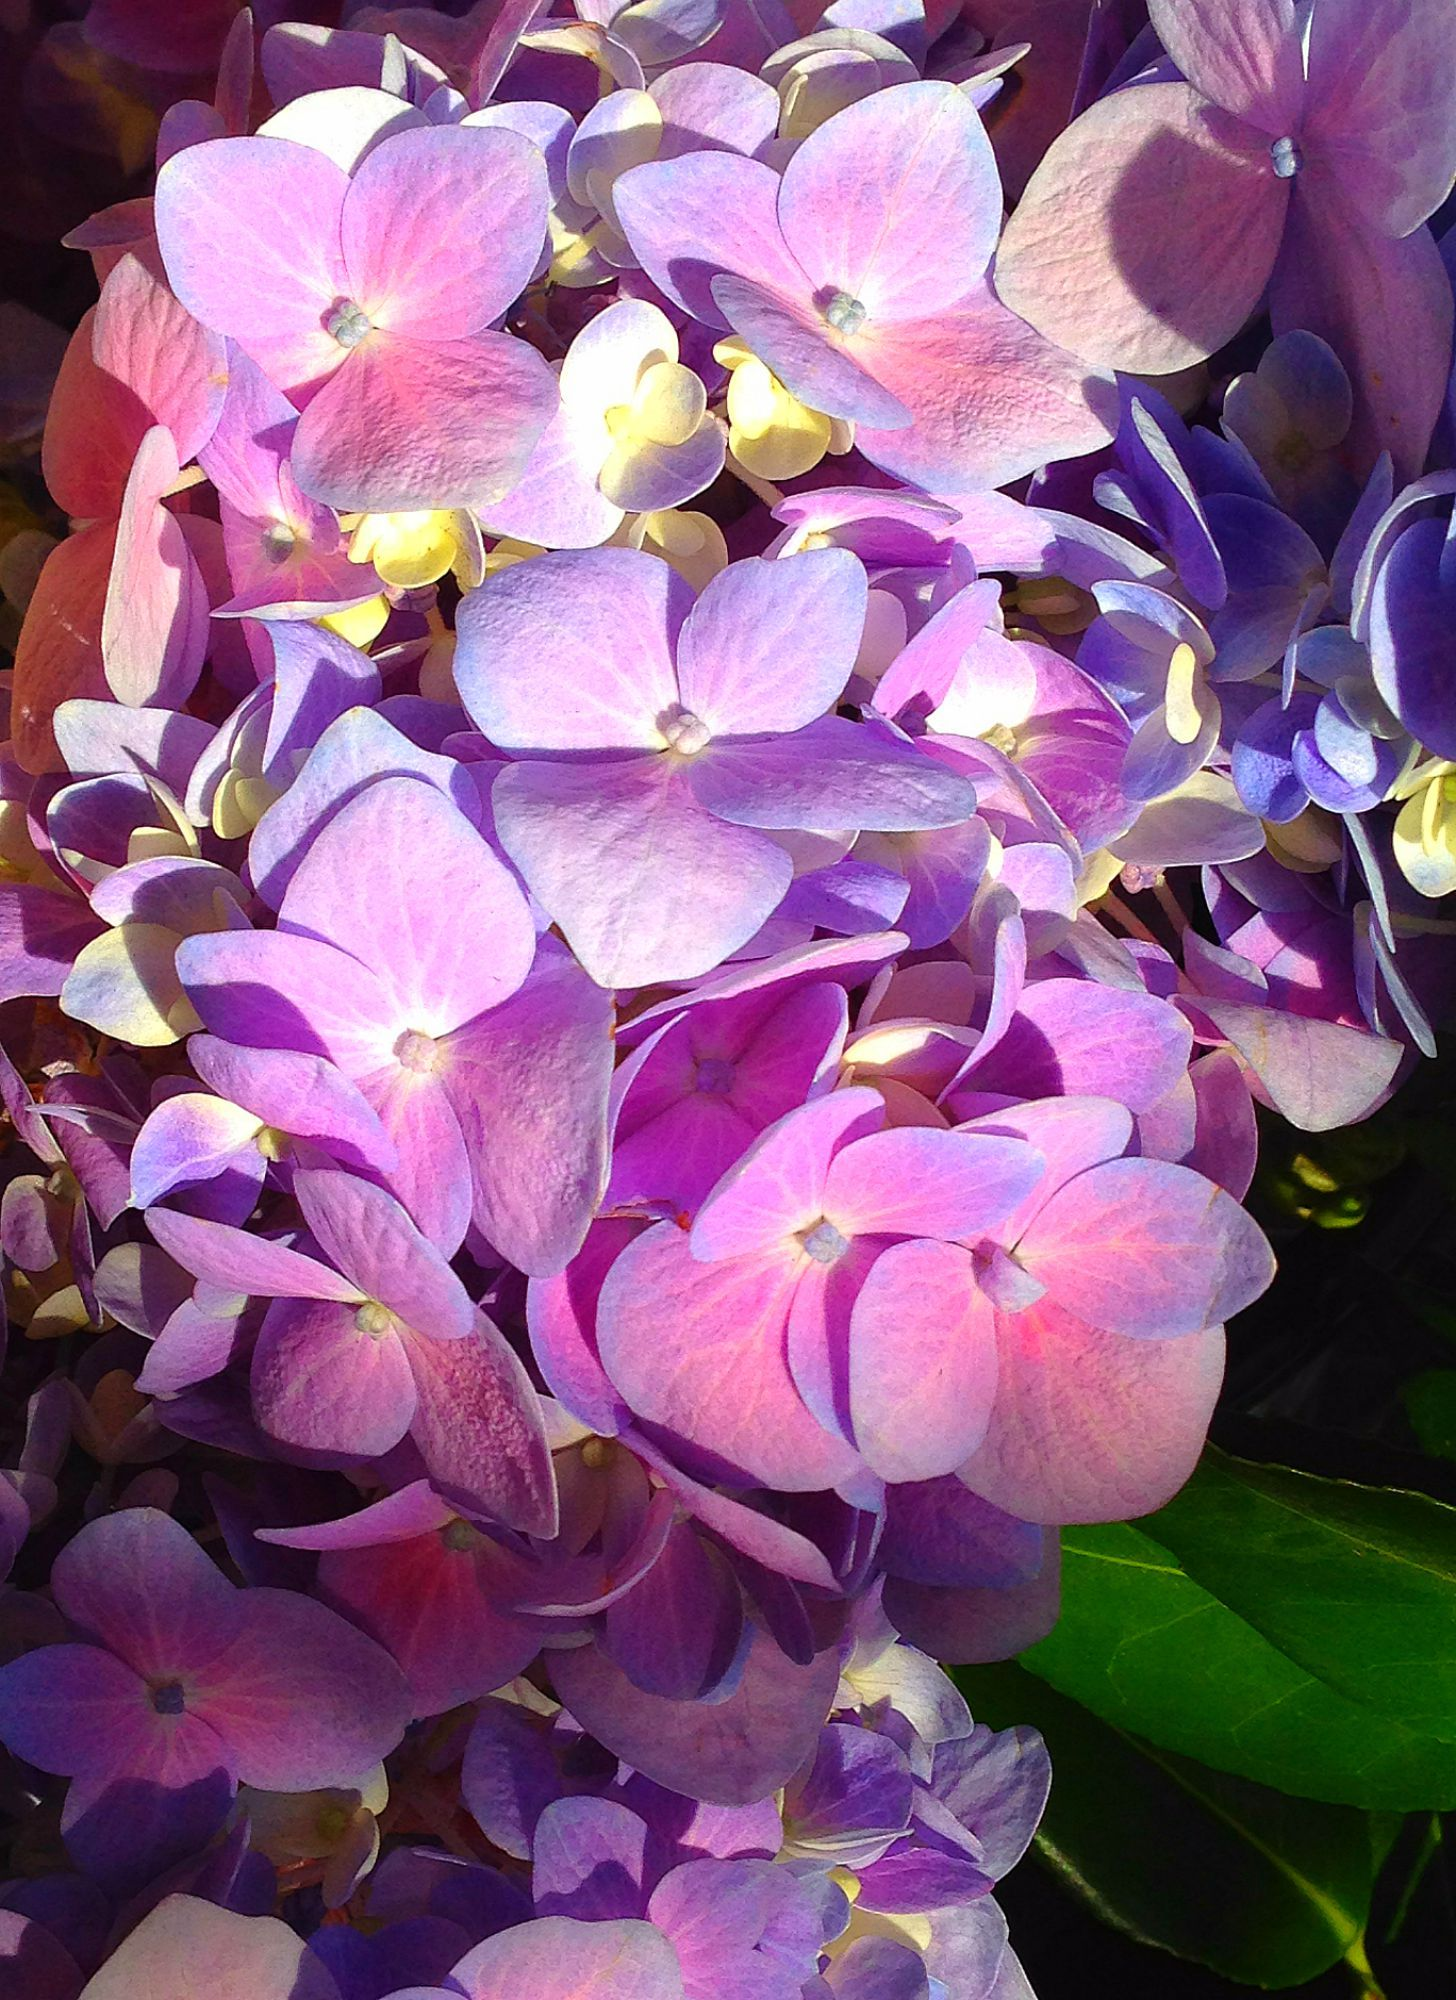 Most Flowers Have An Inspirational Meaning The Hydrangea Is One Of The Few That Has Both Positive And Negative Symbo Symbols And Meanings Flower Power Flowers